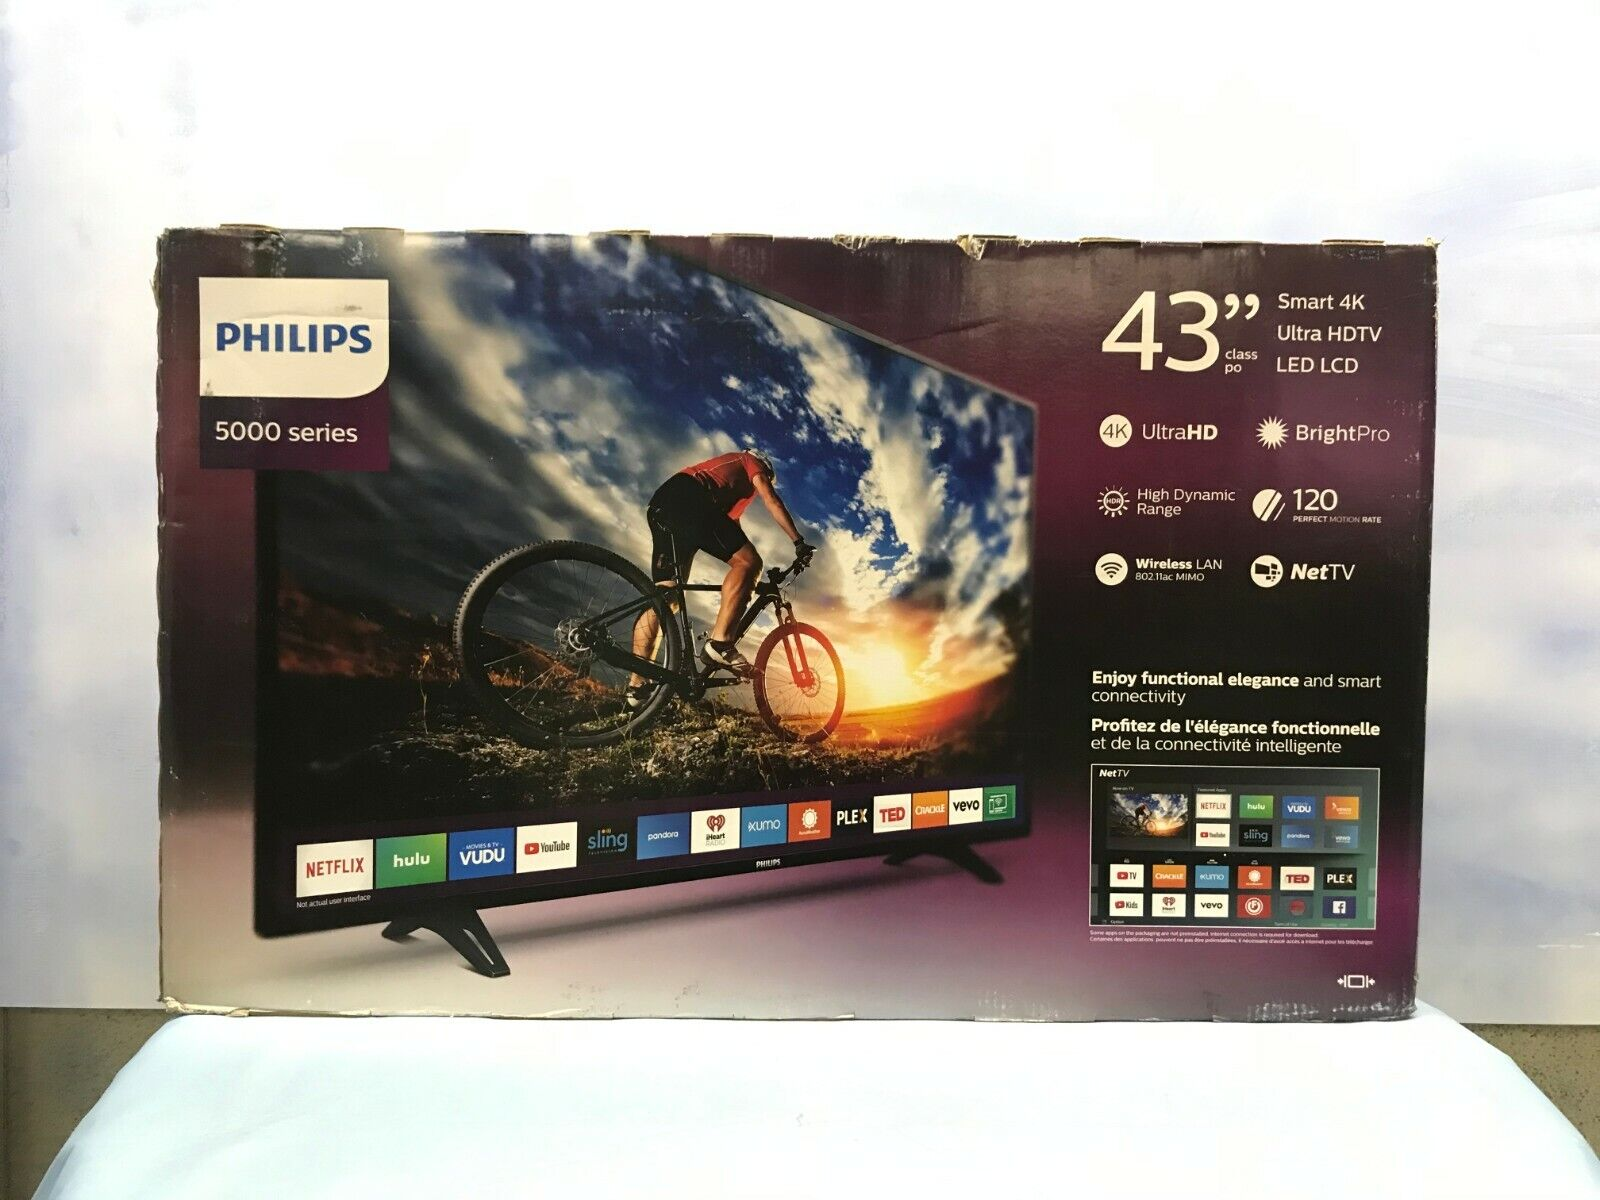 Philips 5000 series 43 inch 4K UHD Smart TV - Ships Today